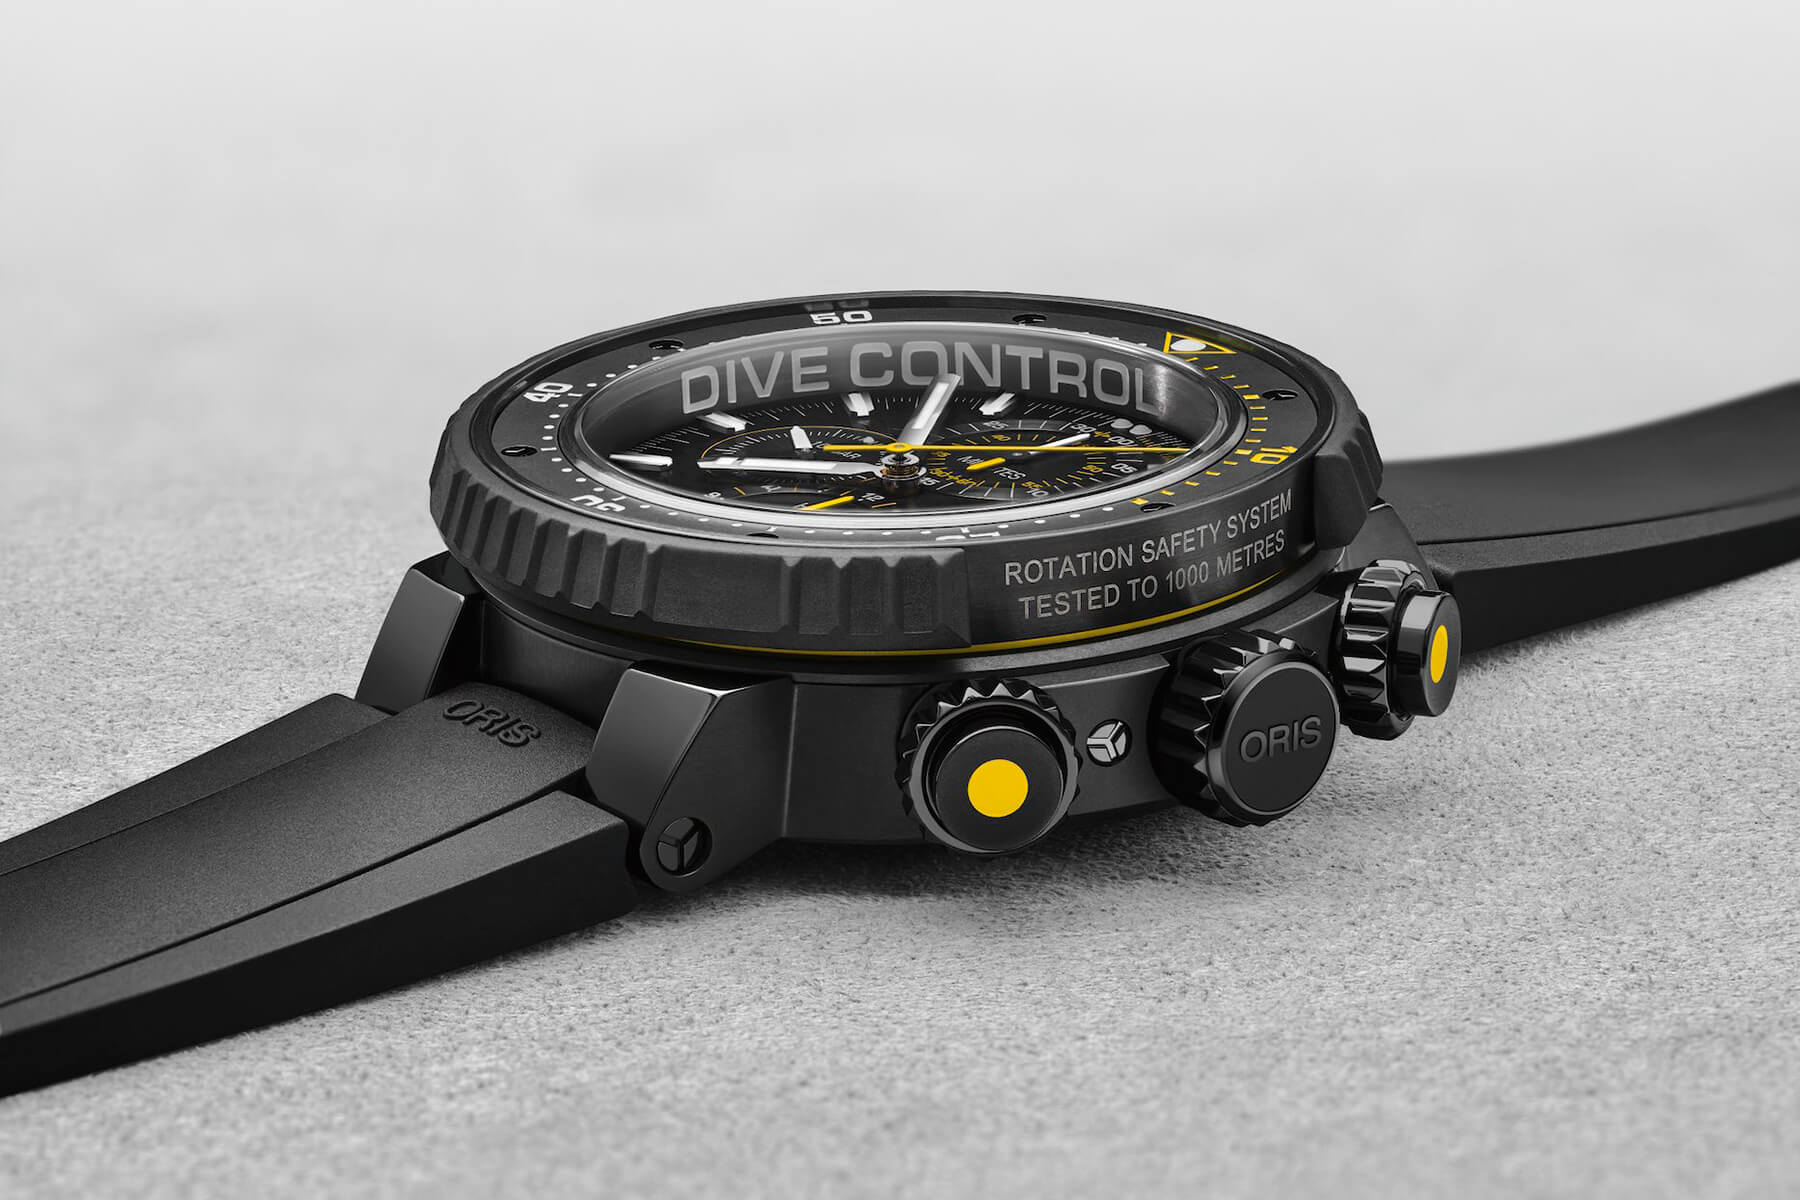 Oris Dive Control Limited Edition Watch - Oracle Time